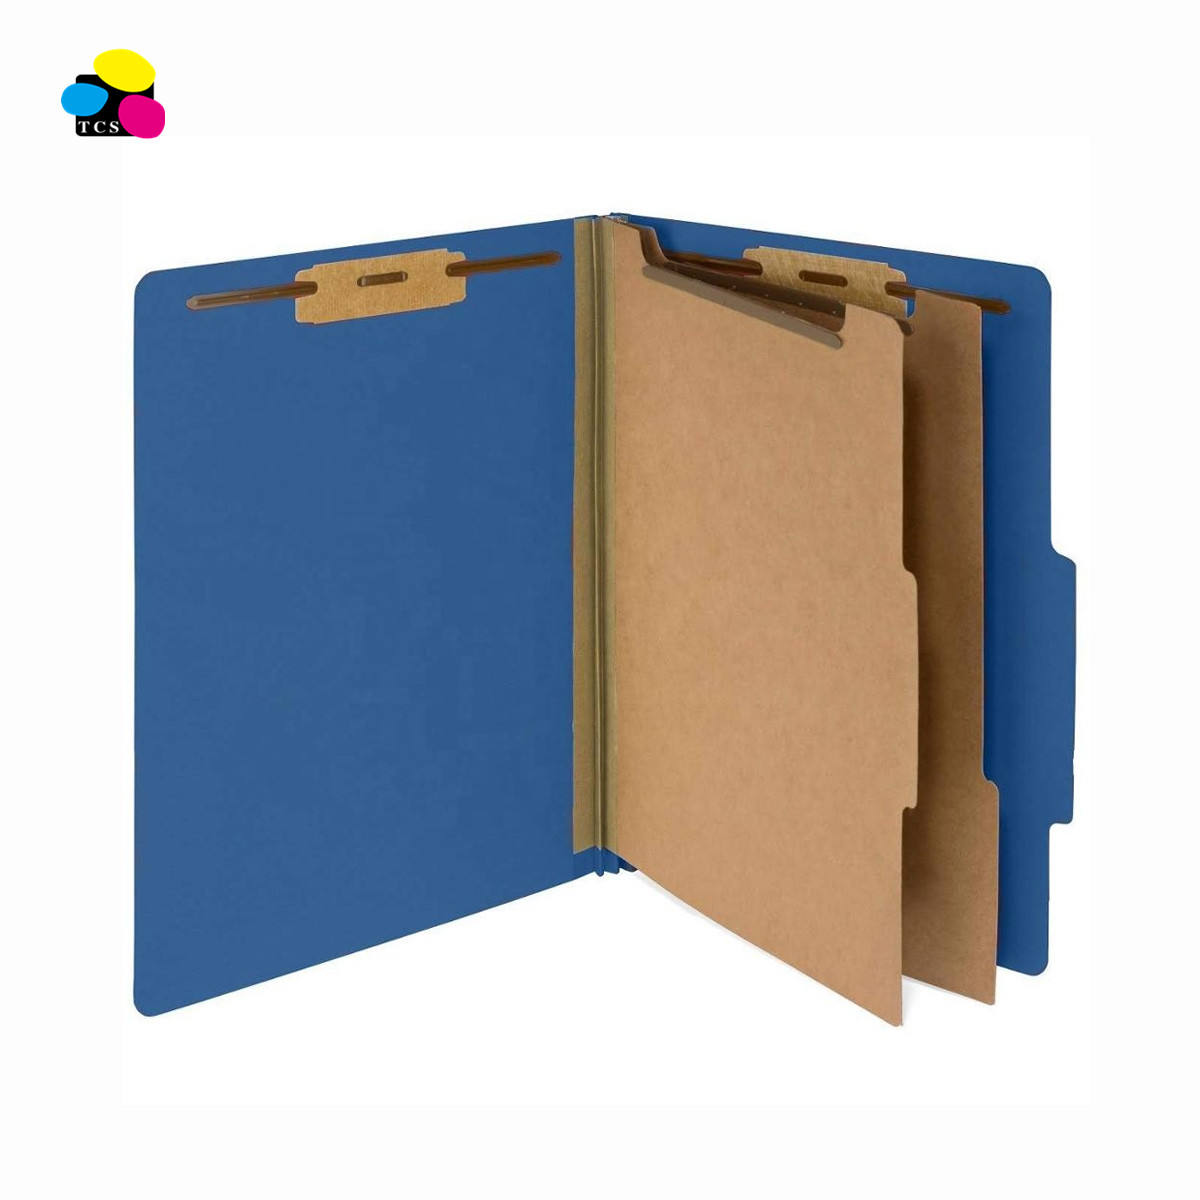 New Letter Size Dark Blue Pressboard Classification Paper File Folders W/ 2 Partitions